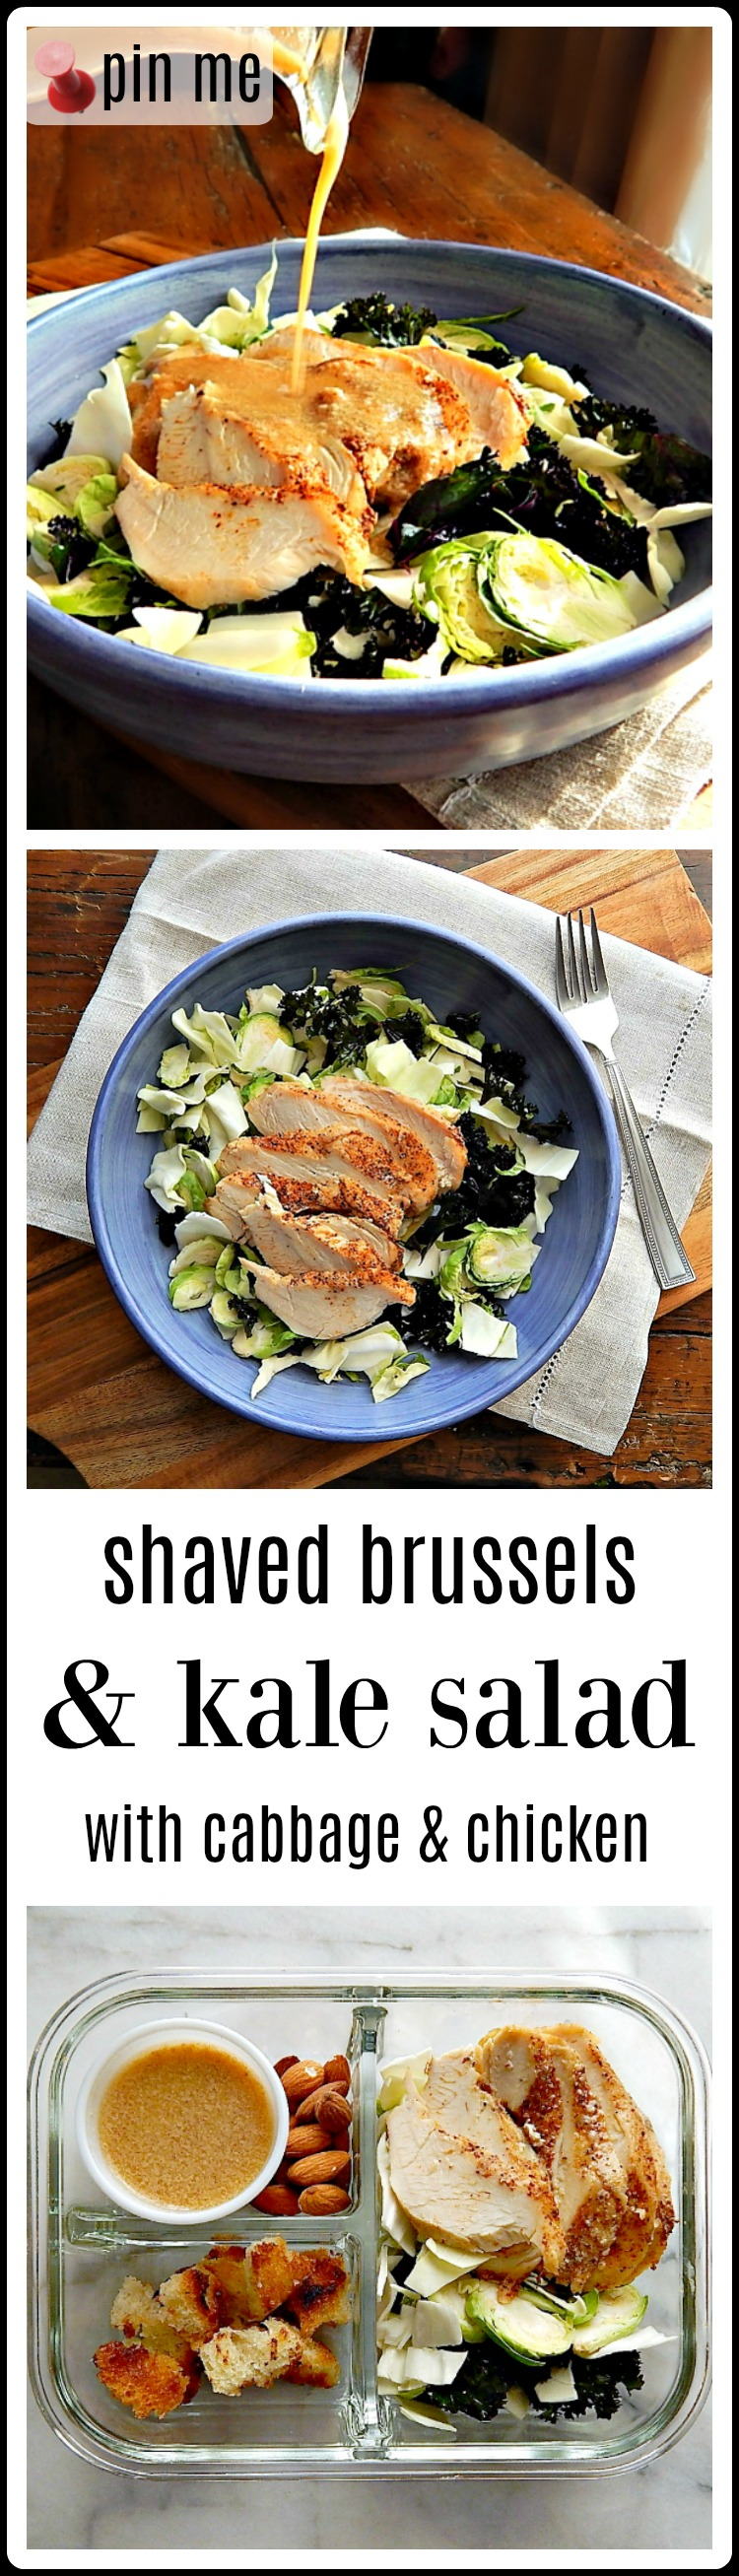 Shaved Brussels & Kale Salad with Chicken Breast. It is loaded with the healthy vegetables: Kale and Brussels Sprouts & Cabbage, and still manages to taste delish!! Perfect for lunch, dinner or meal prep. #ChickenKaleSalad #HealthySalad #KaleBrusselsChickenSalad